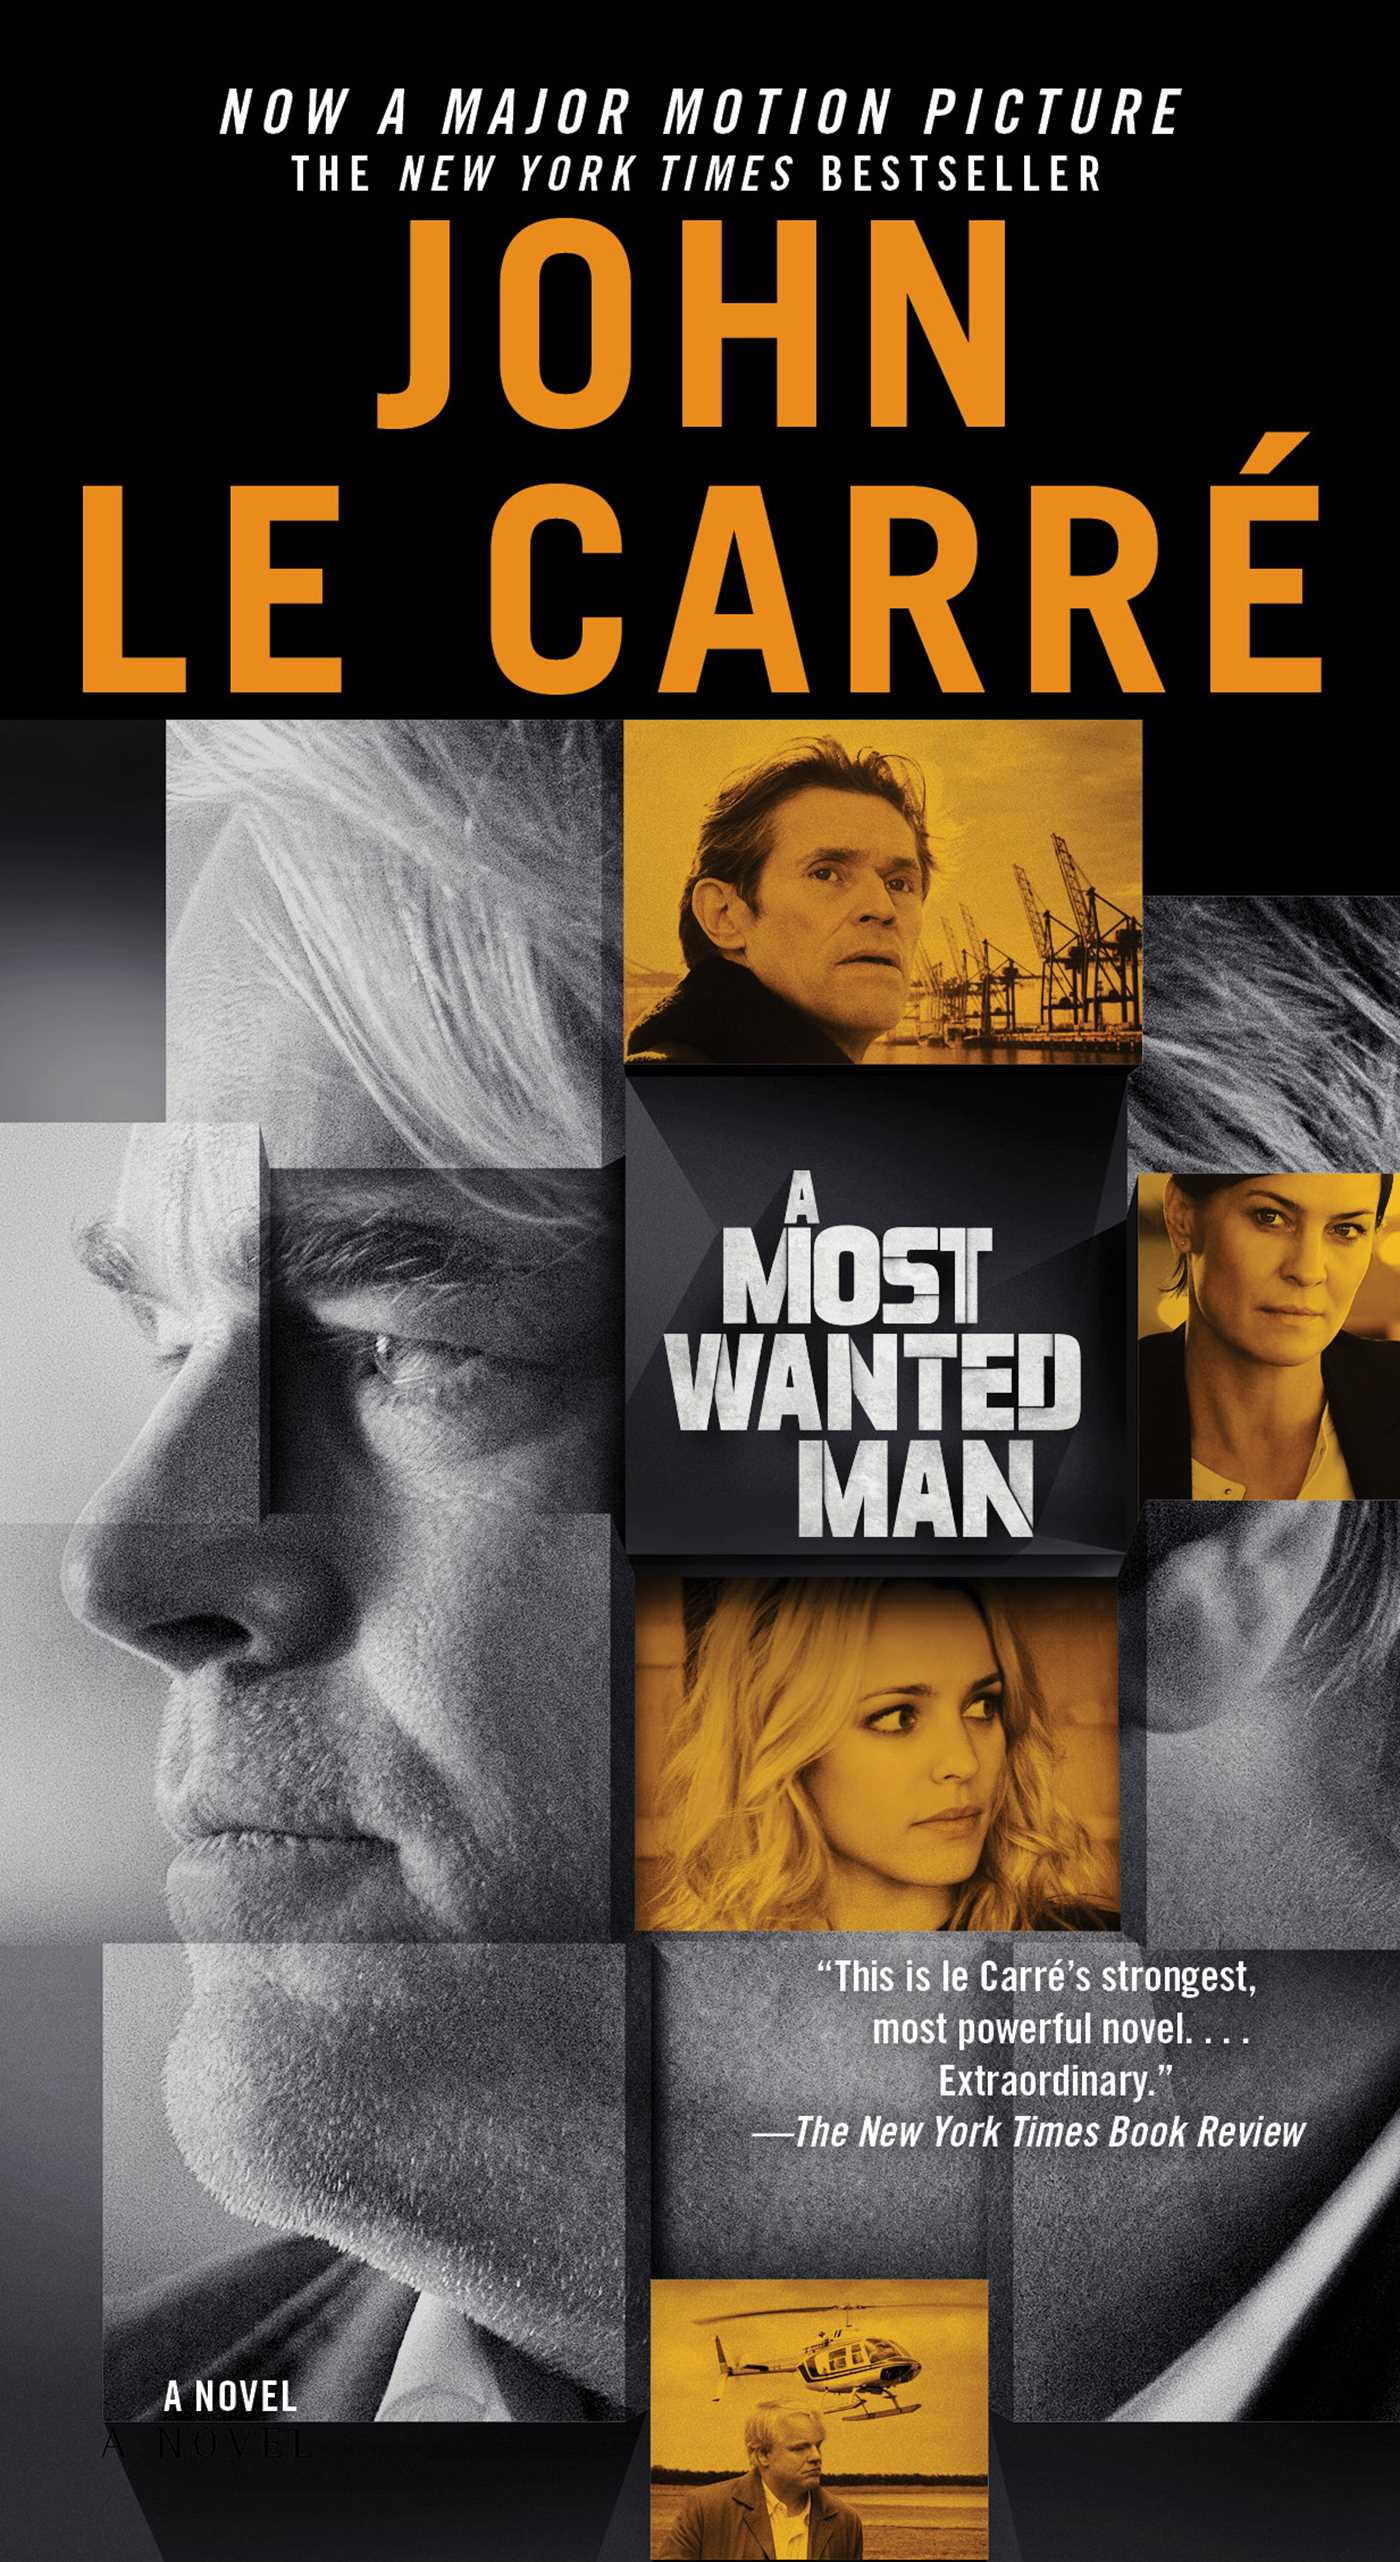 A most wanted man 9781439123218 hr